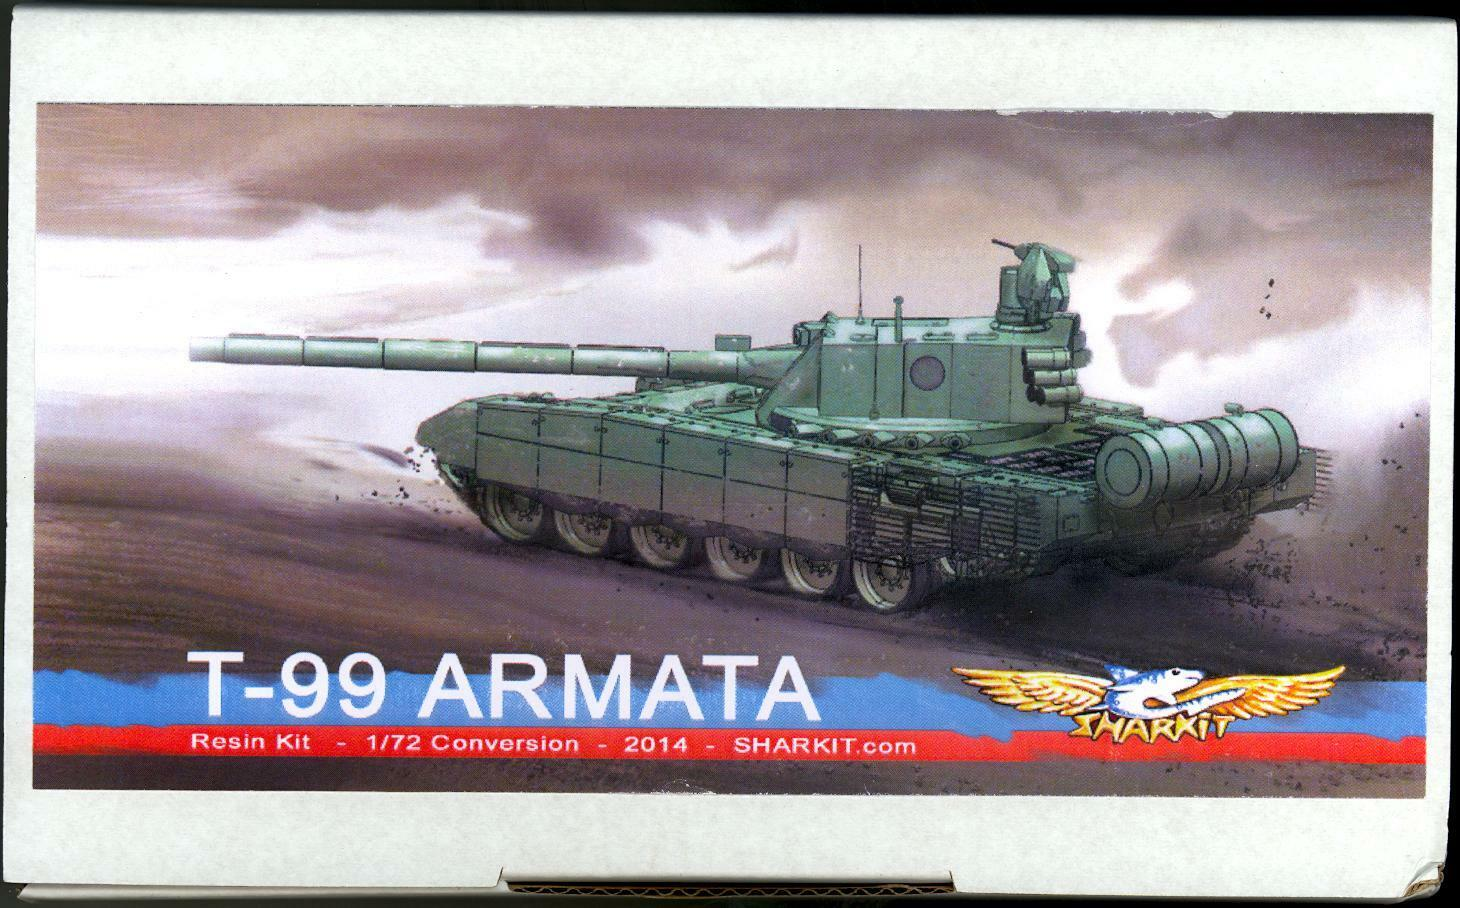 Sharkit Models 1 72 Russian T-99 ARMATA TANK Resin Conversion Kit